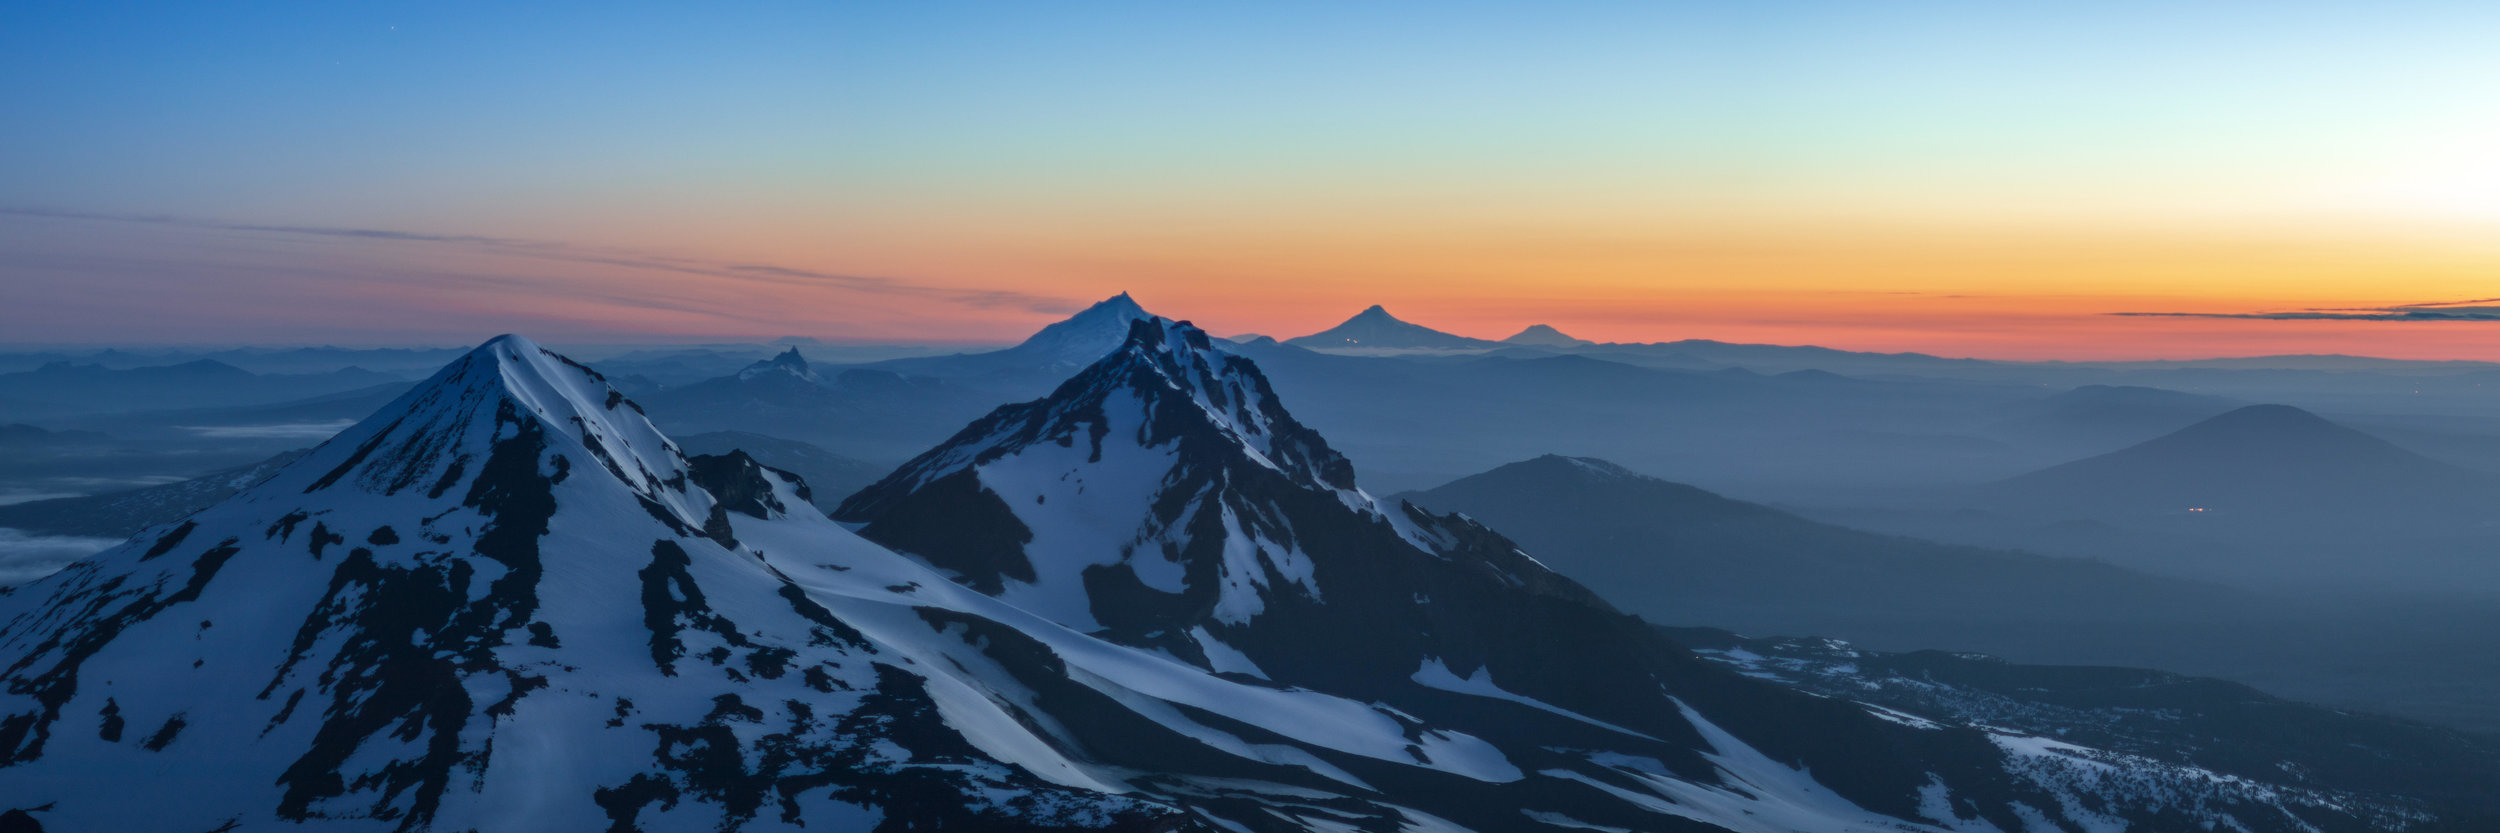 South Sister Summit at Sunrise. Photo by Daniel Fauss.